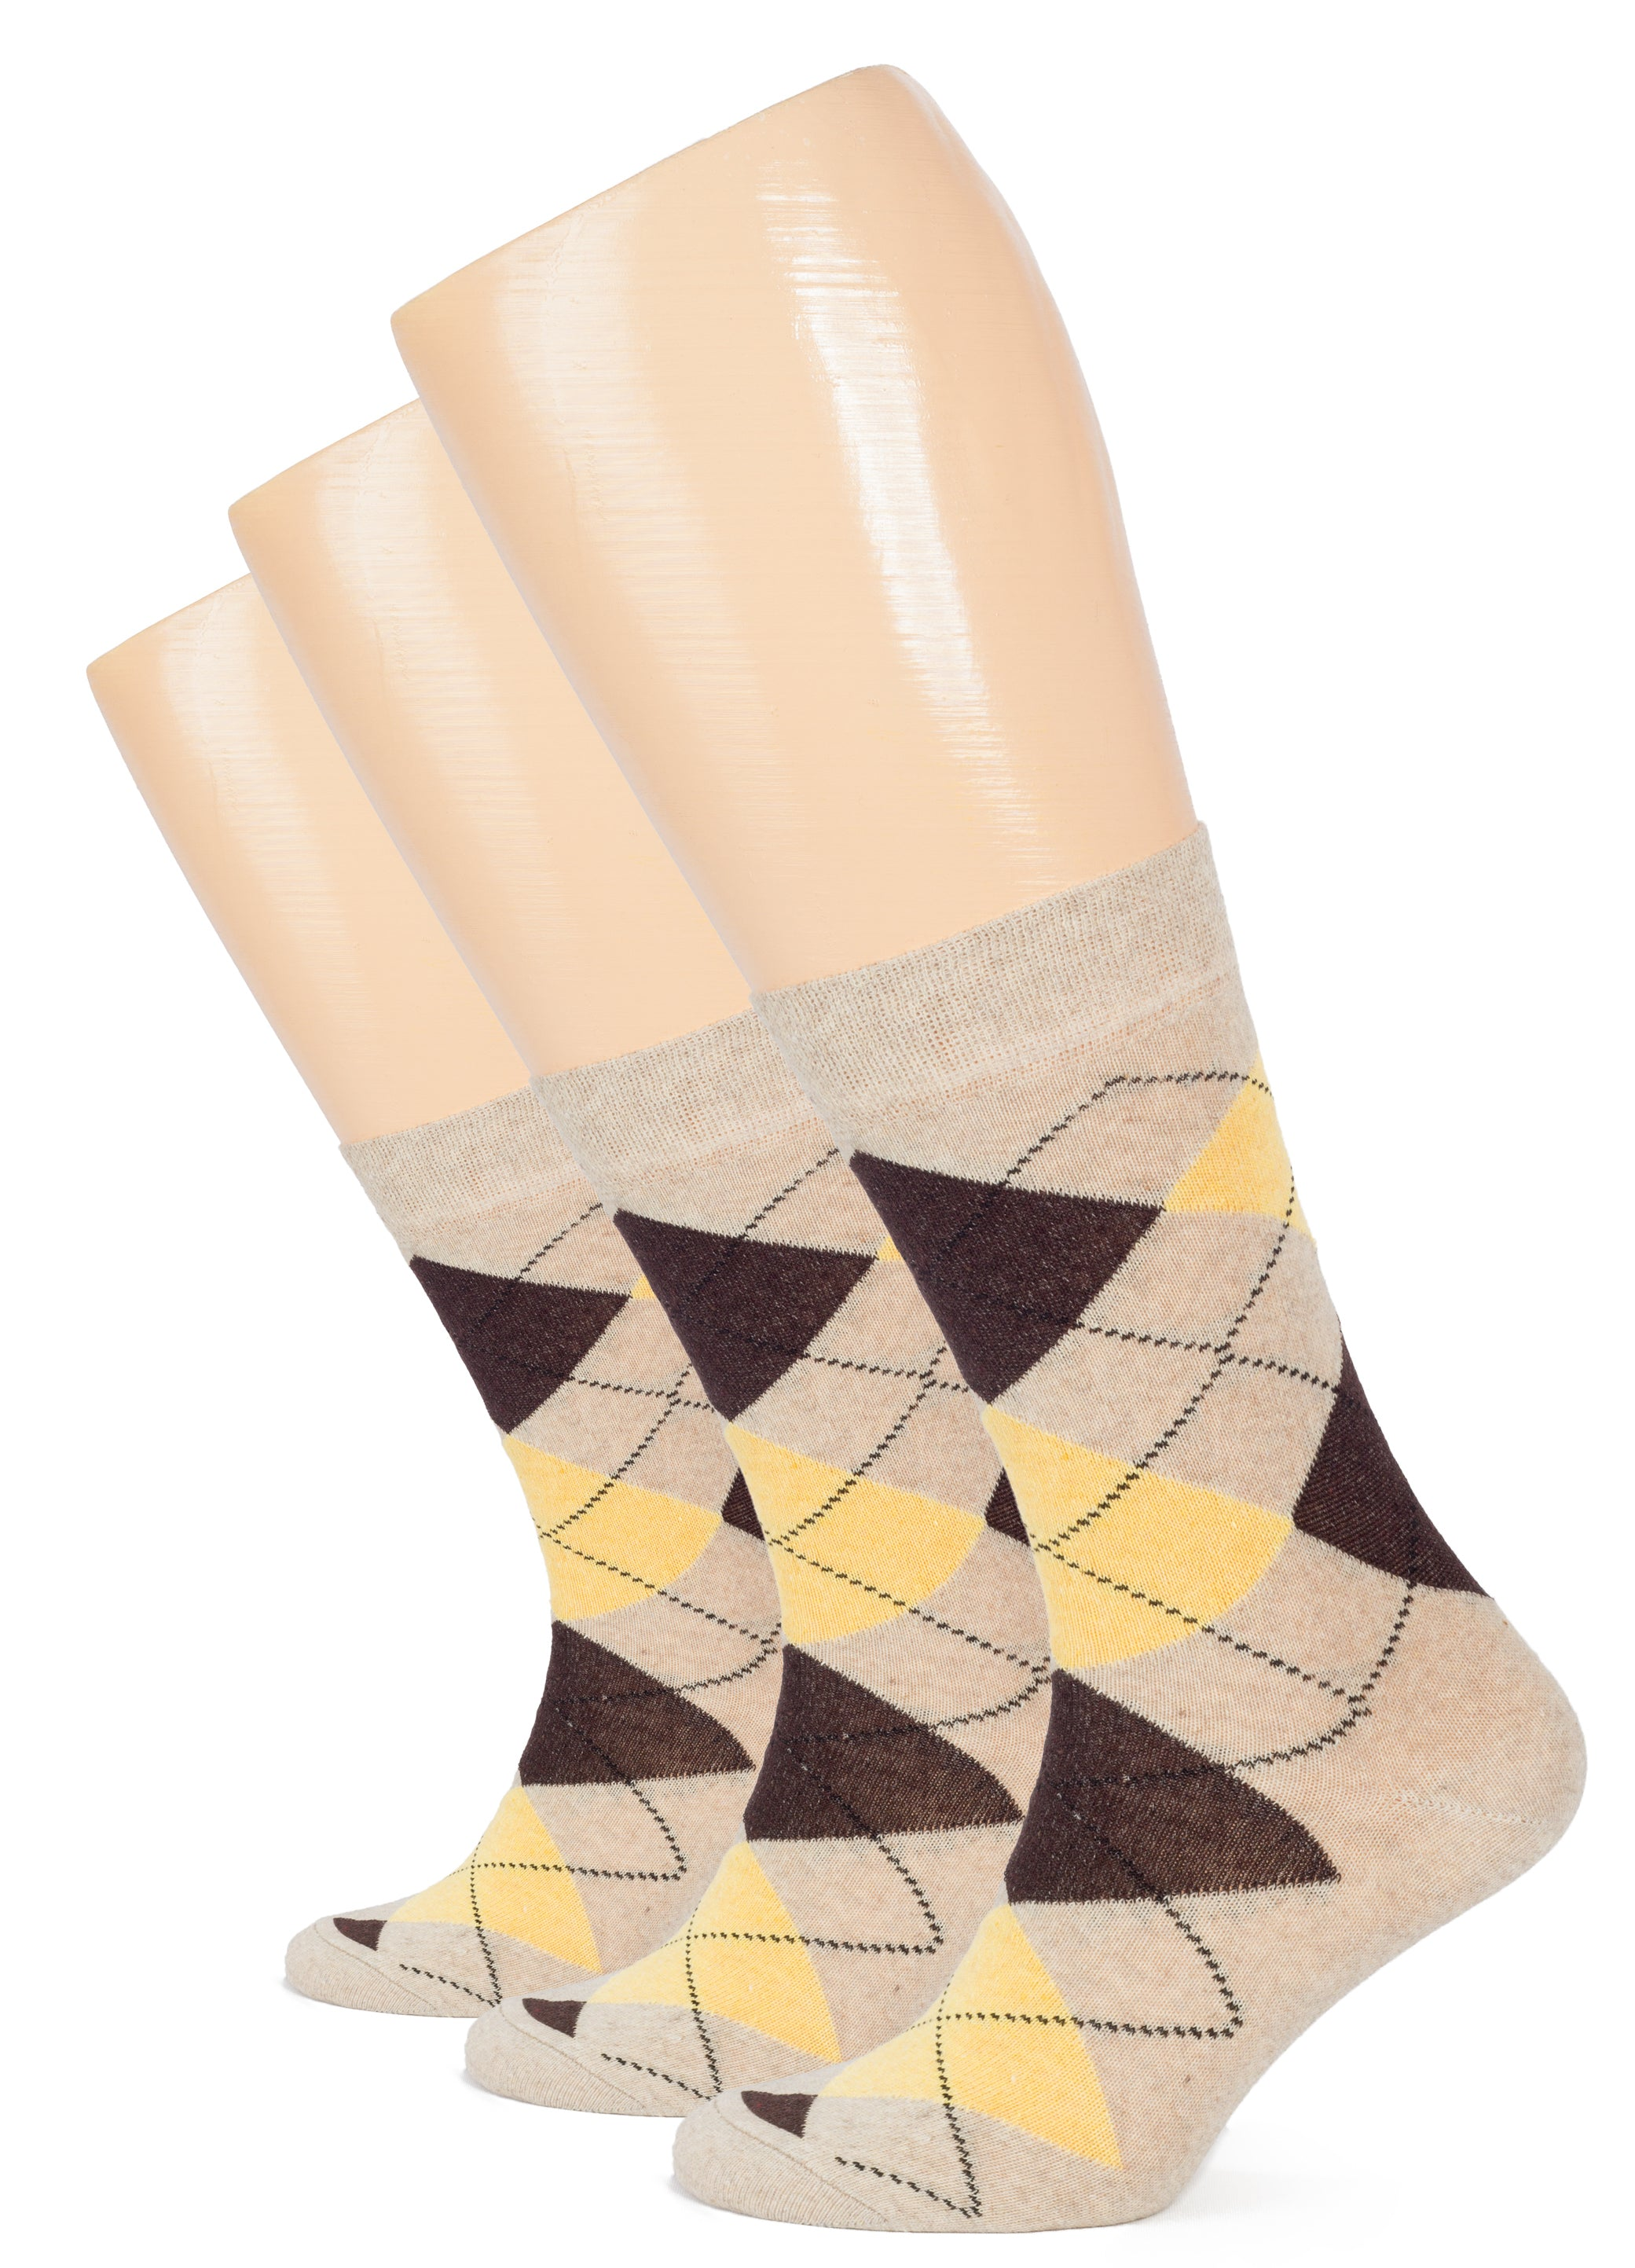 Hugh Ugoli Womens Cotton Argyle Socks Fun Colorful Women's Crew Socks, 4 Pairs